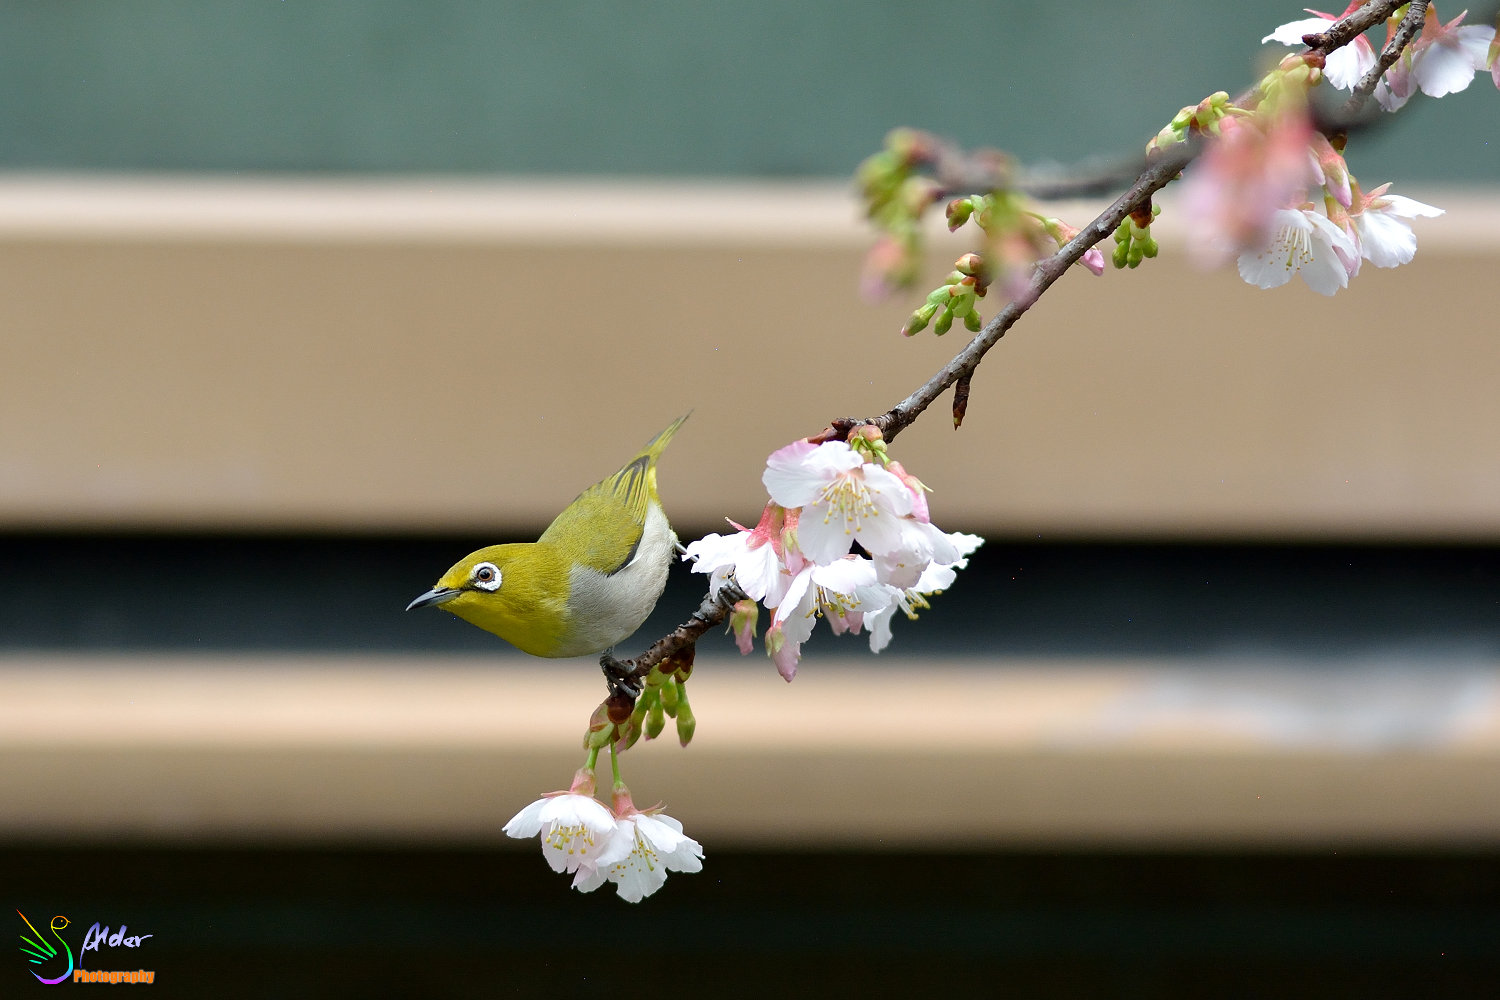 Sakura_White-eye_6662